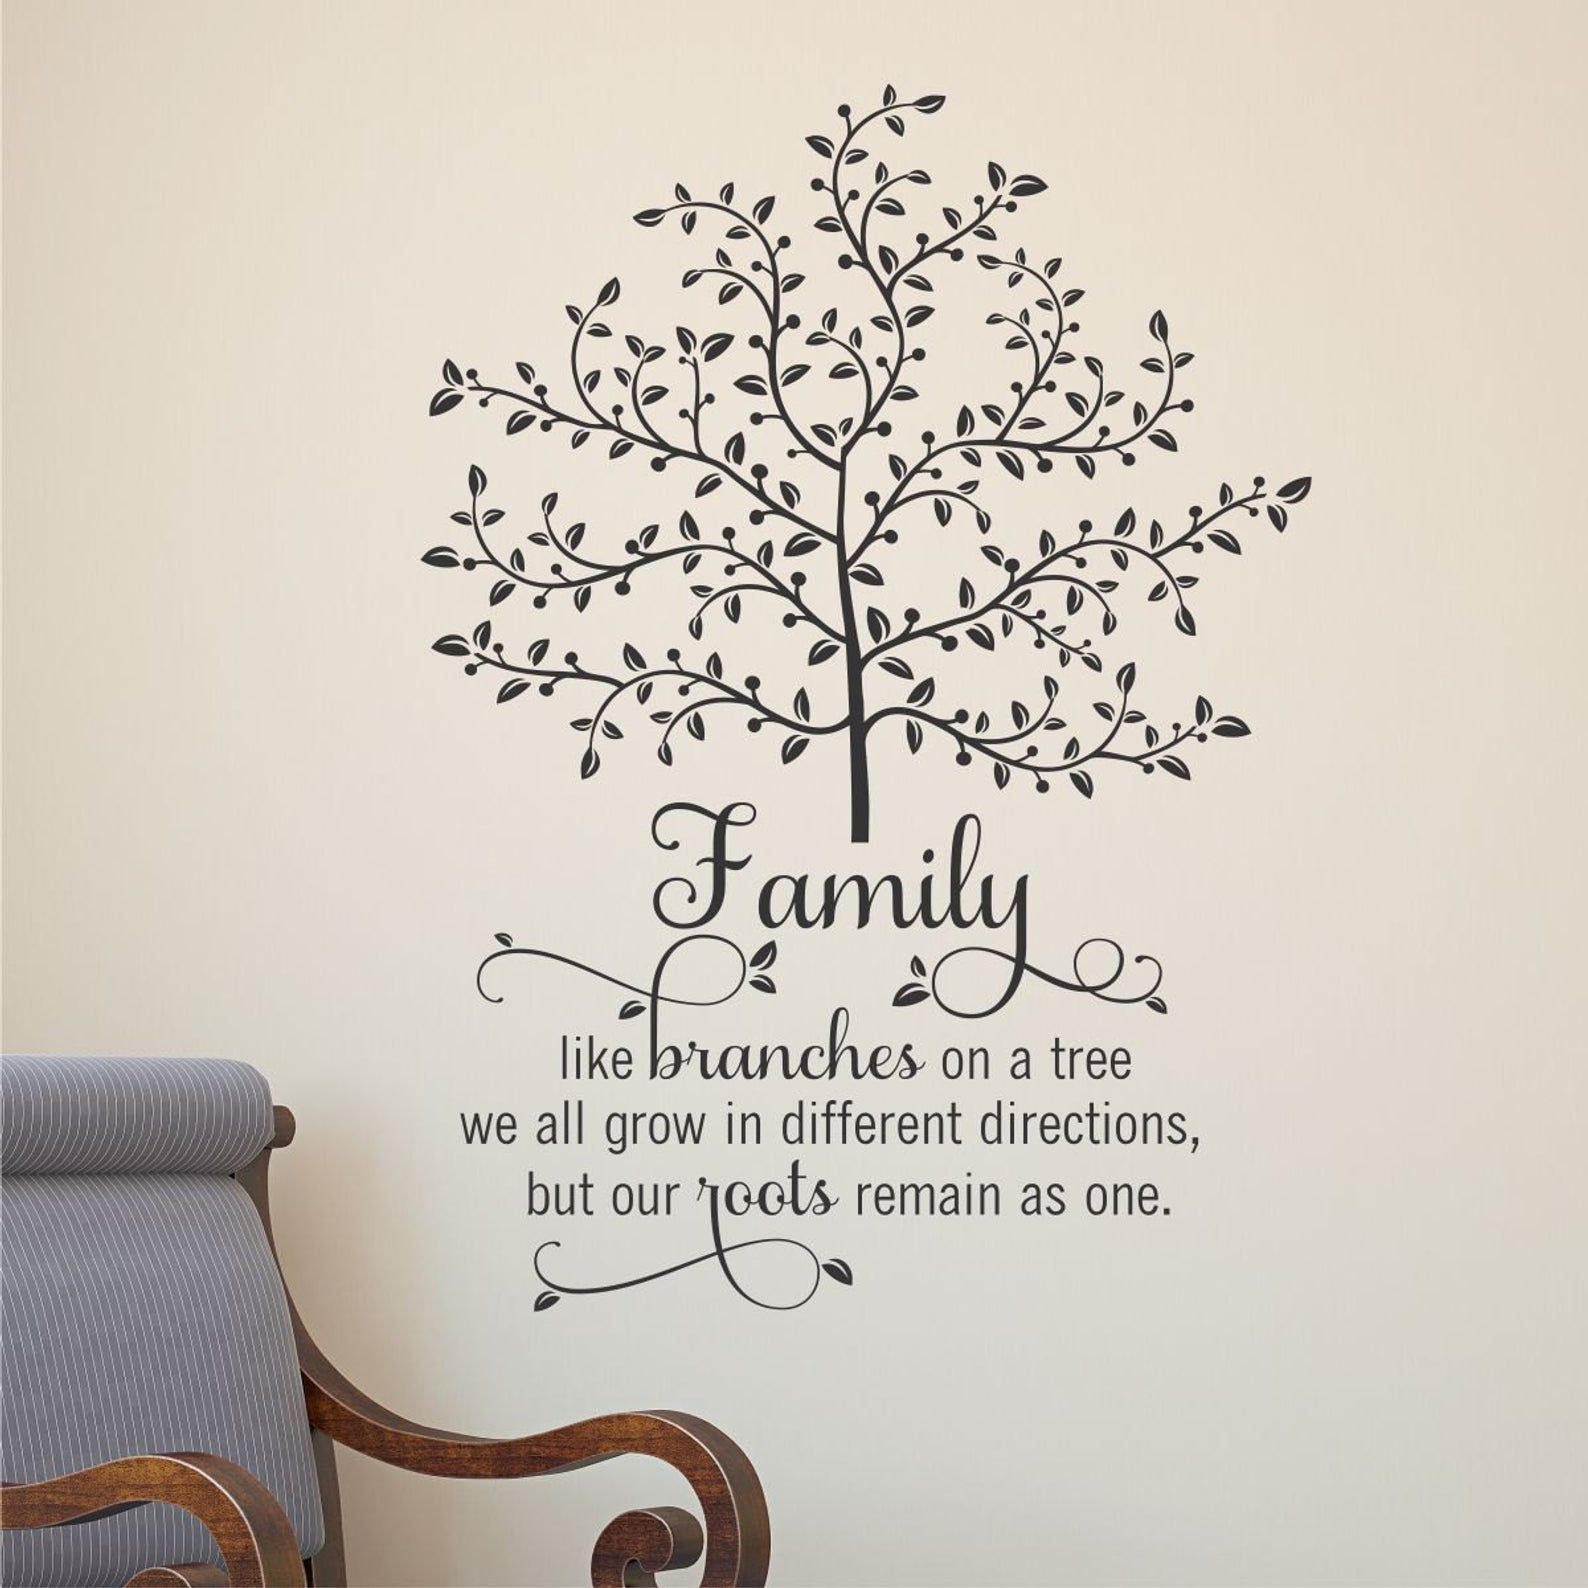 Wall Quote Decal Family Tree With Roots Branches Home Wall Art Etsy Family Tree Quotes Family Wall Decals Quotes Family Tree Wall Decal